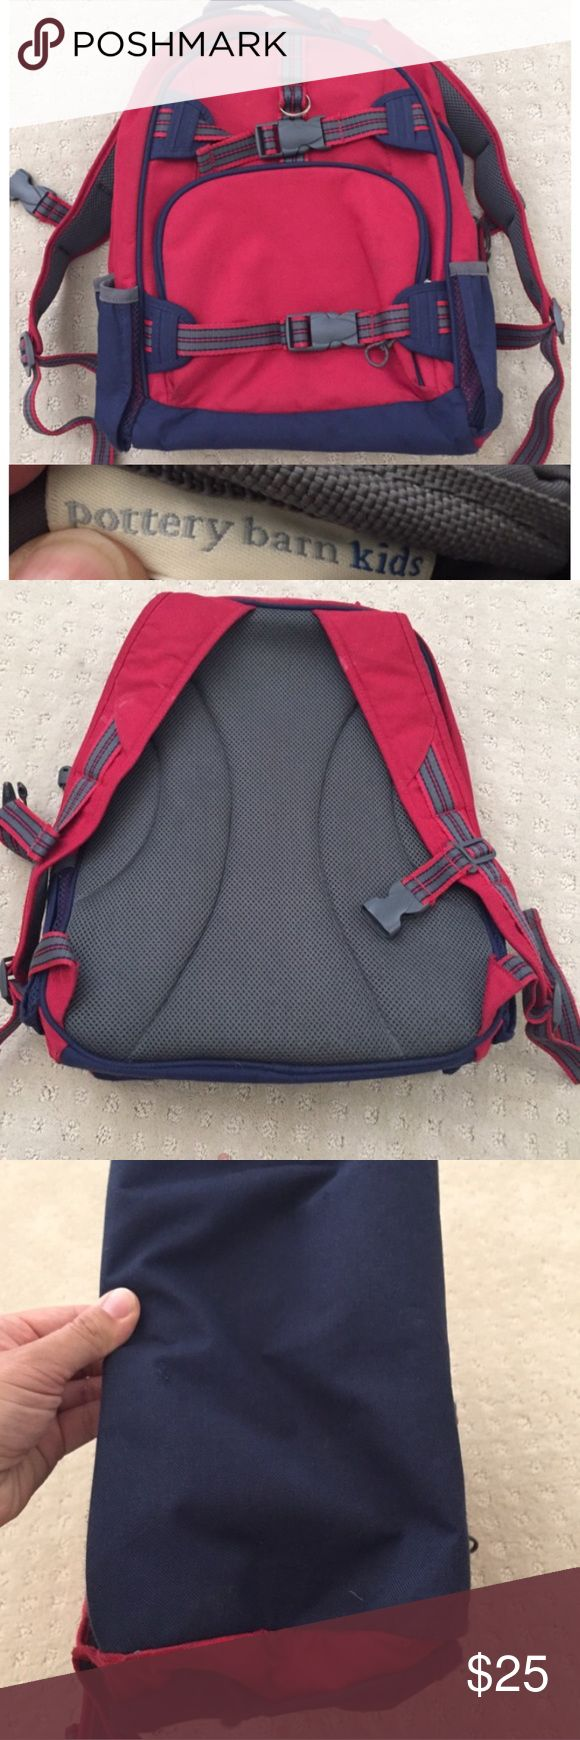 Pottery Barn Kids red backpack Red and navy backpack in excellent condition no holes or stains. The name is filled out but that should come out with some finger nail polish remover or magic eraser. This is the large backpack Potter Barn Kids Bags Backpacks